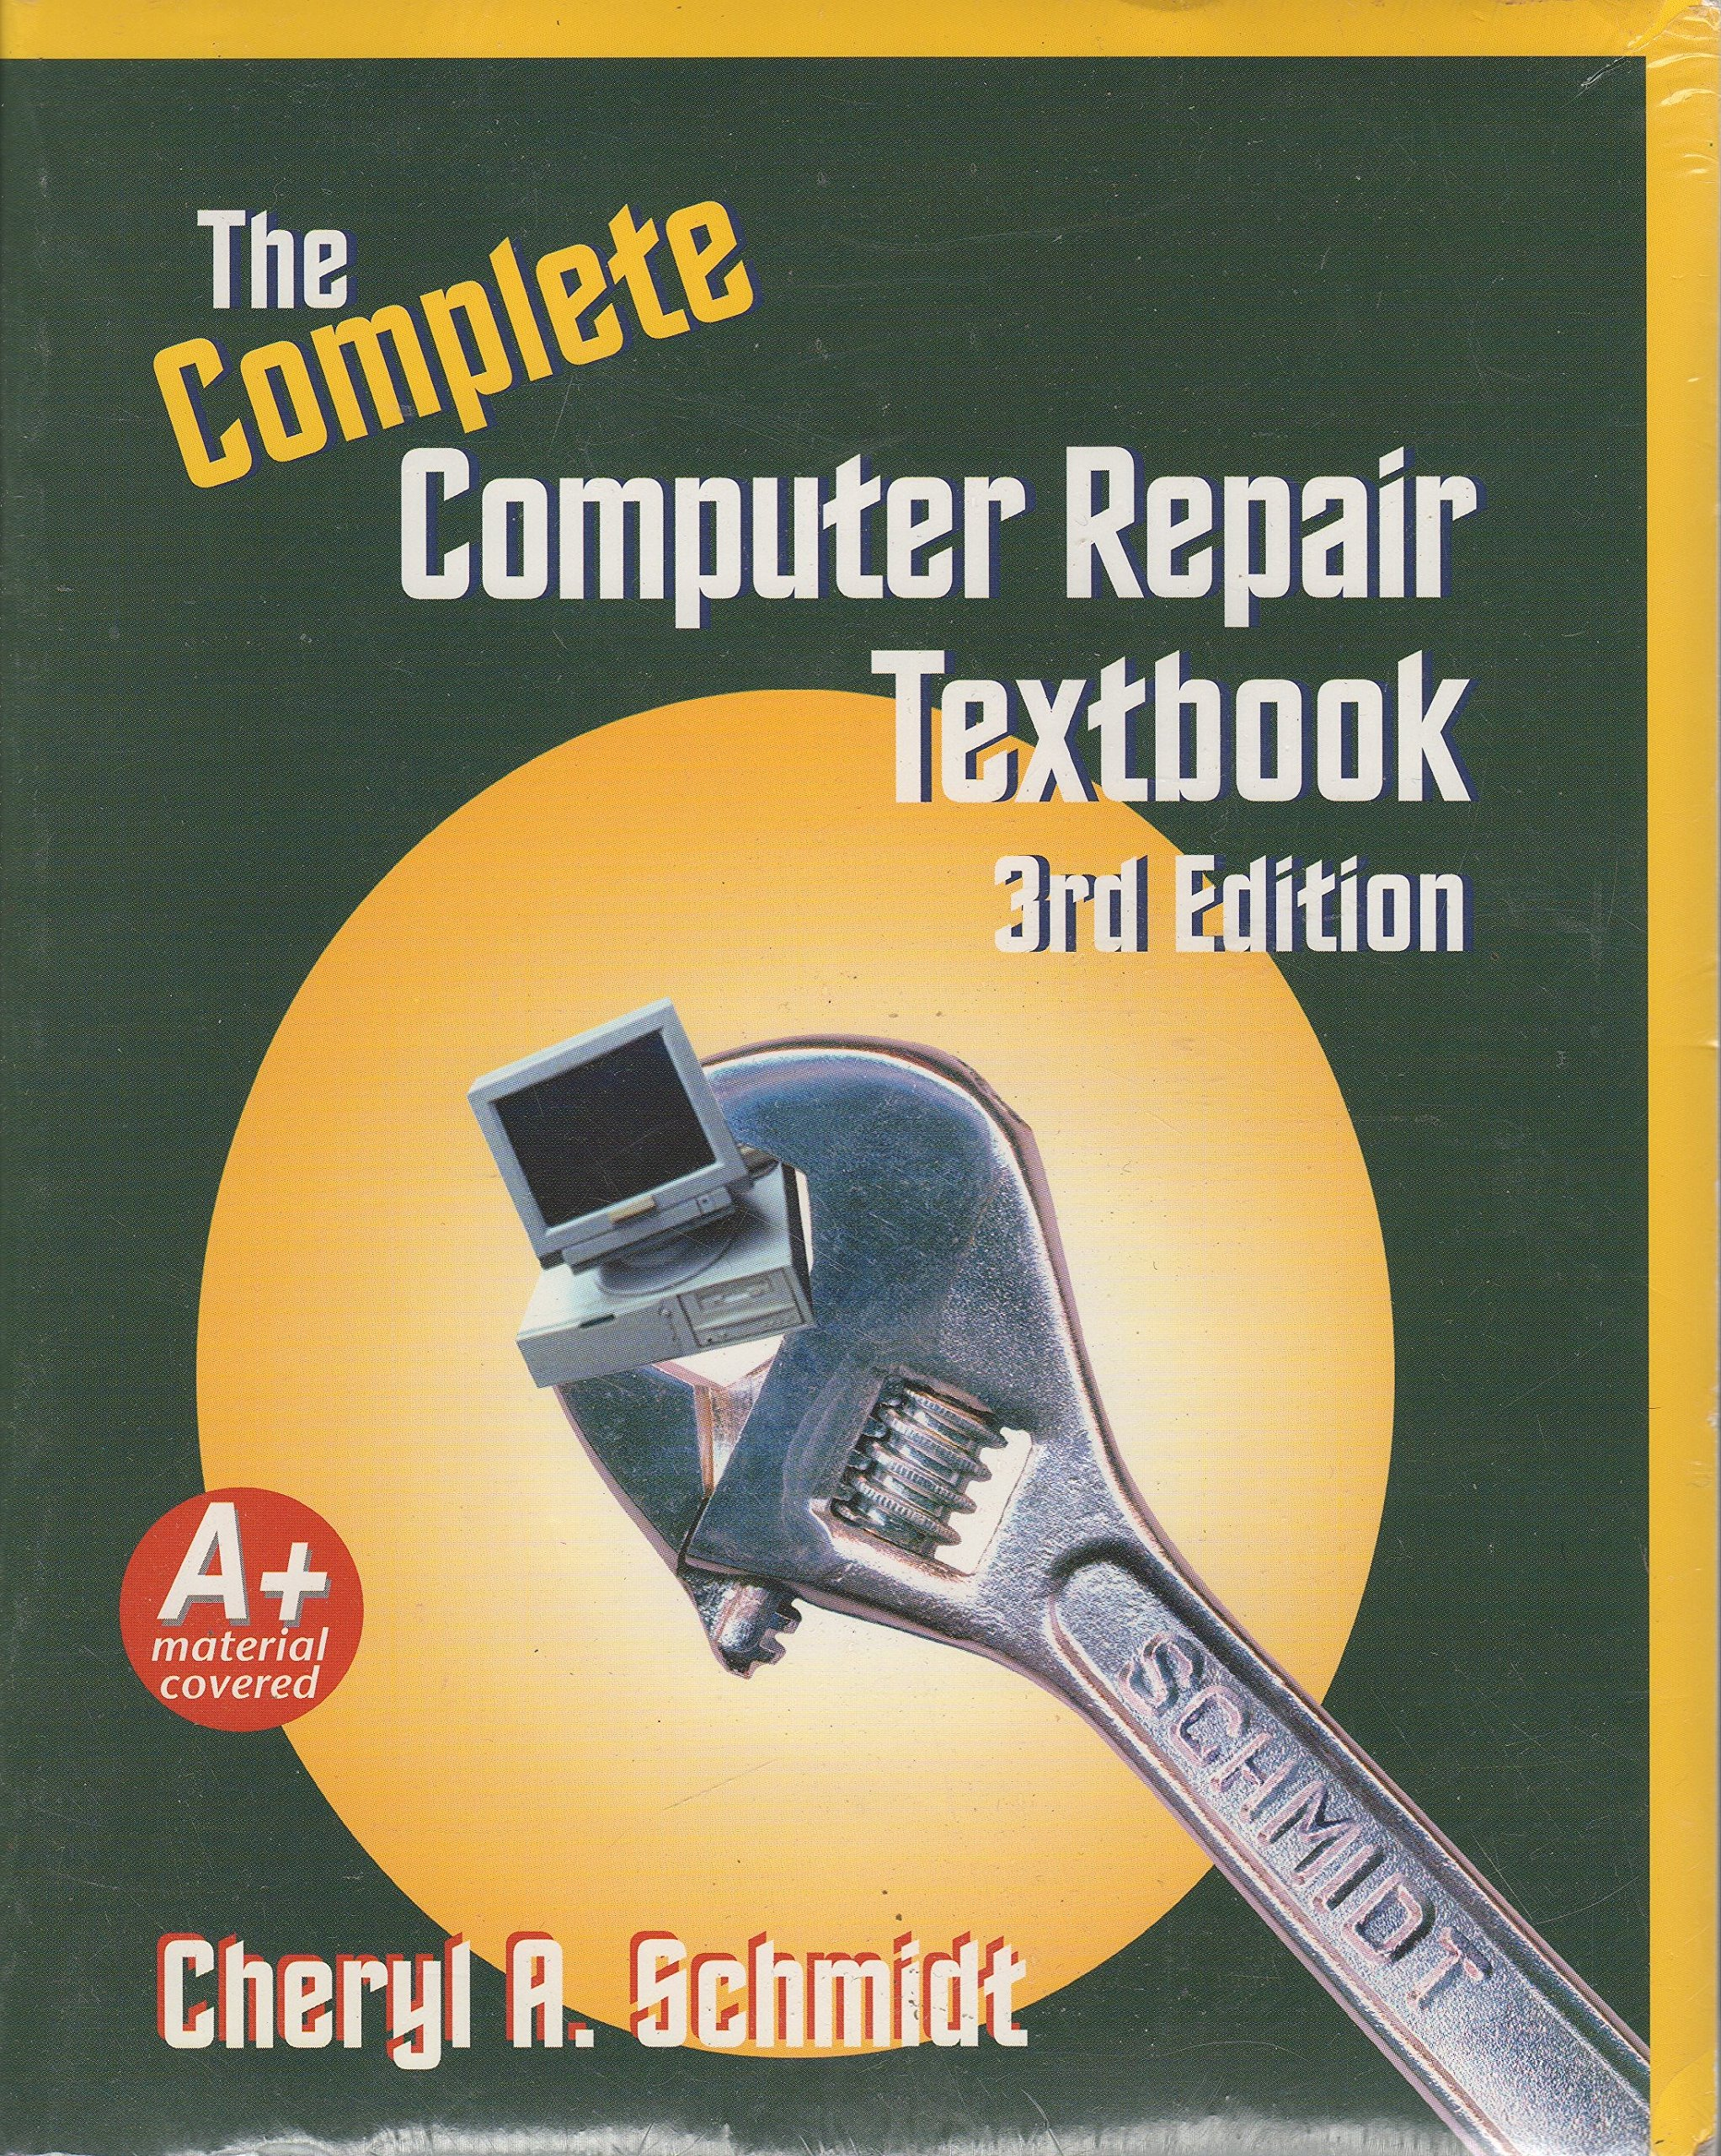 Complete Computer Repair (3rd Edition): Cheryl A. Schmidt: 9781576760673:  Amazon.com: Books